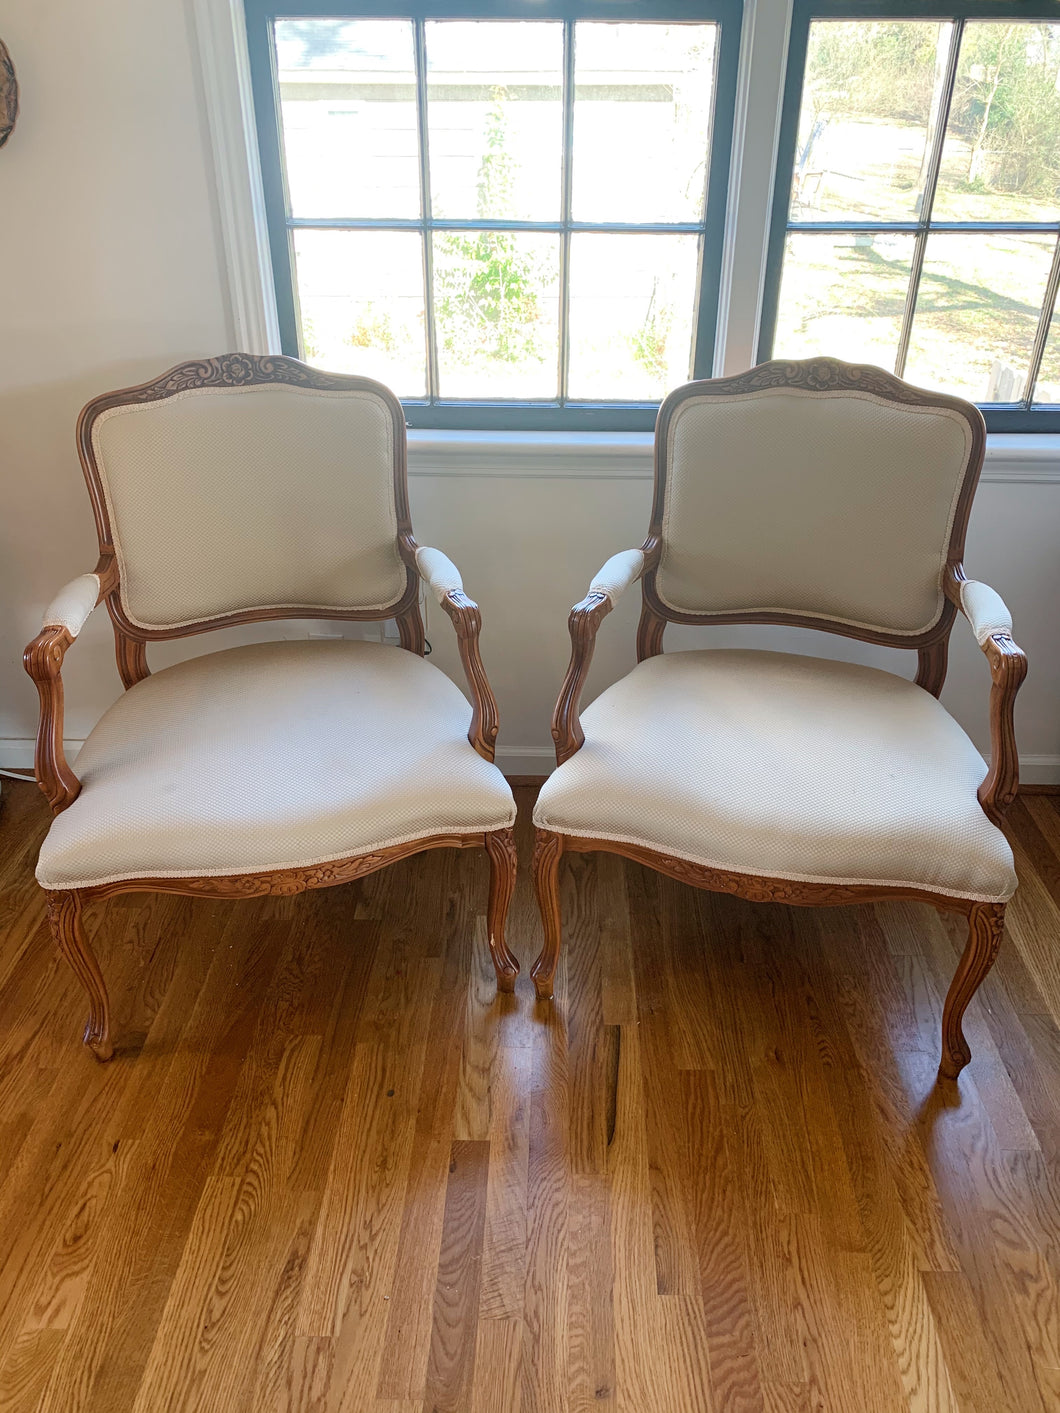 Pair of French Hand Carved Chairs